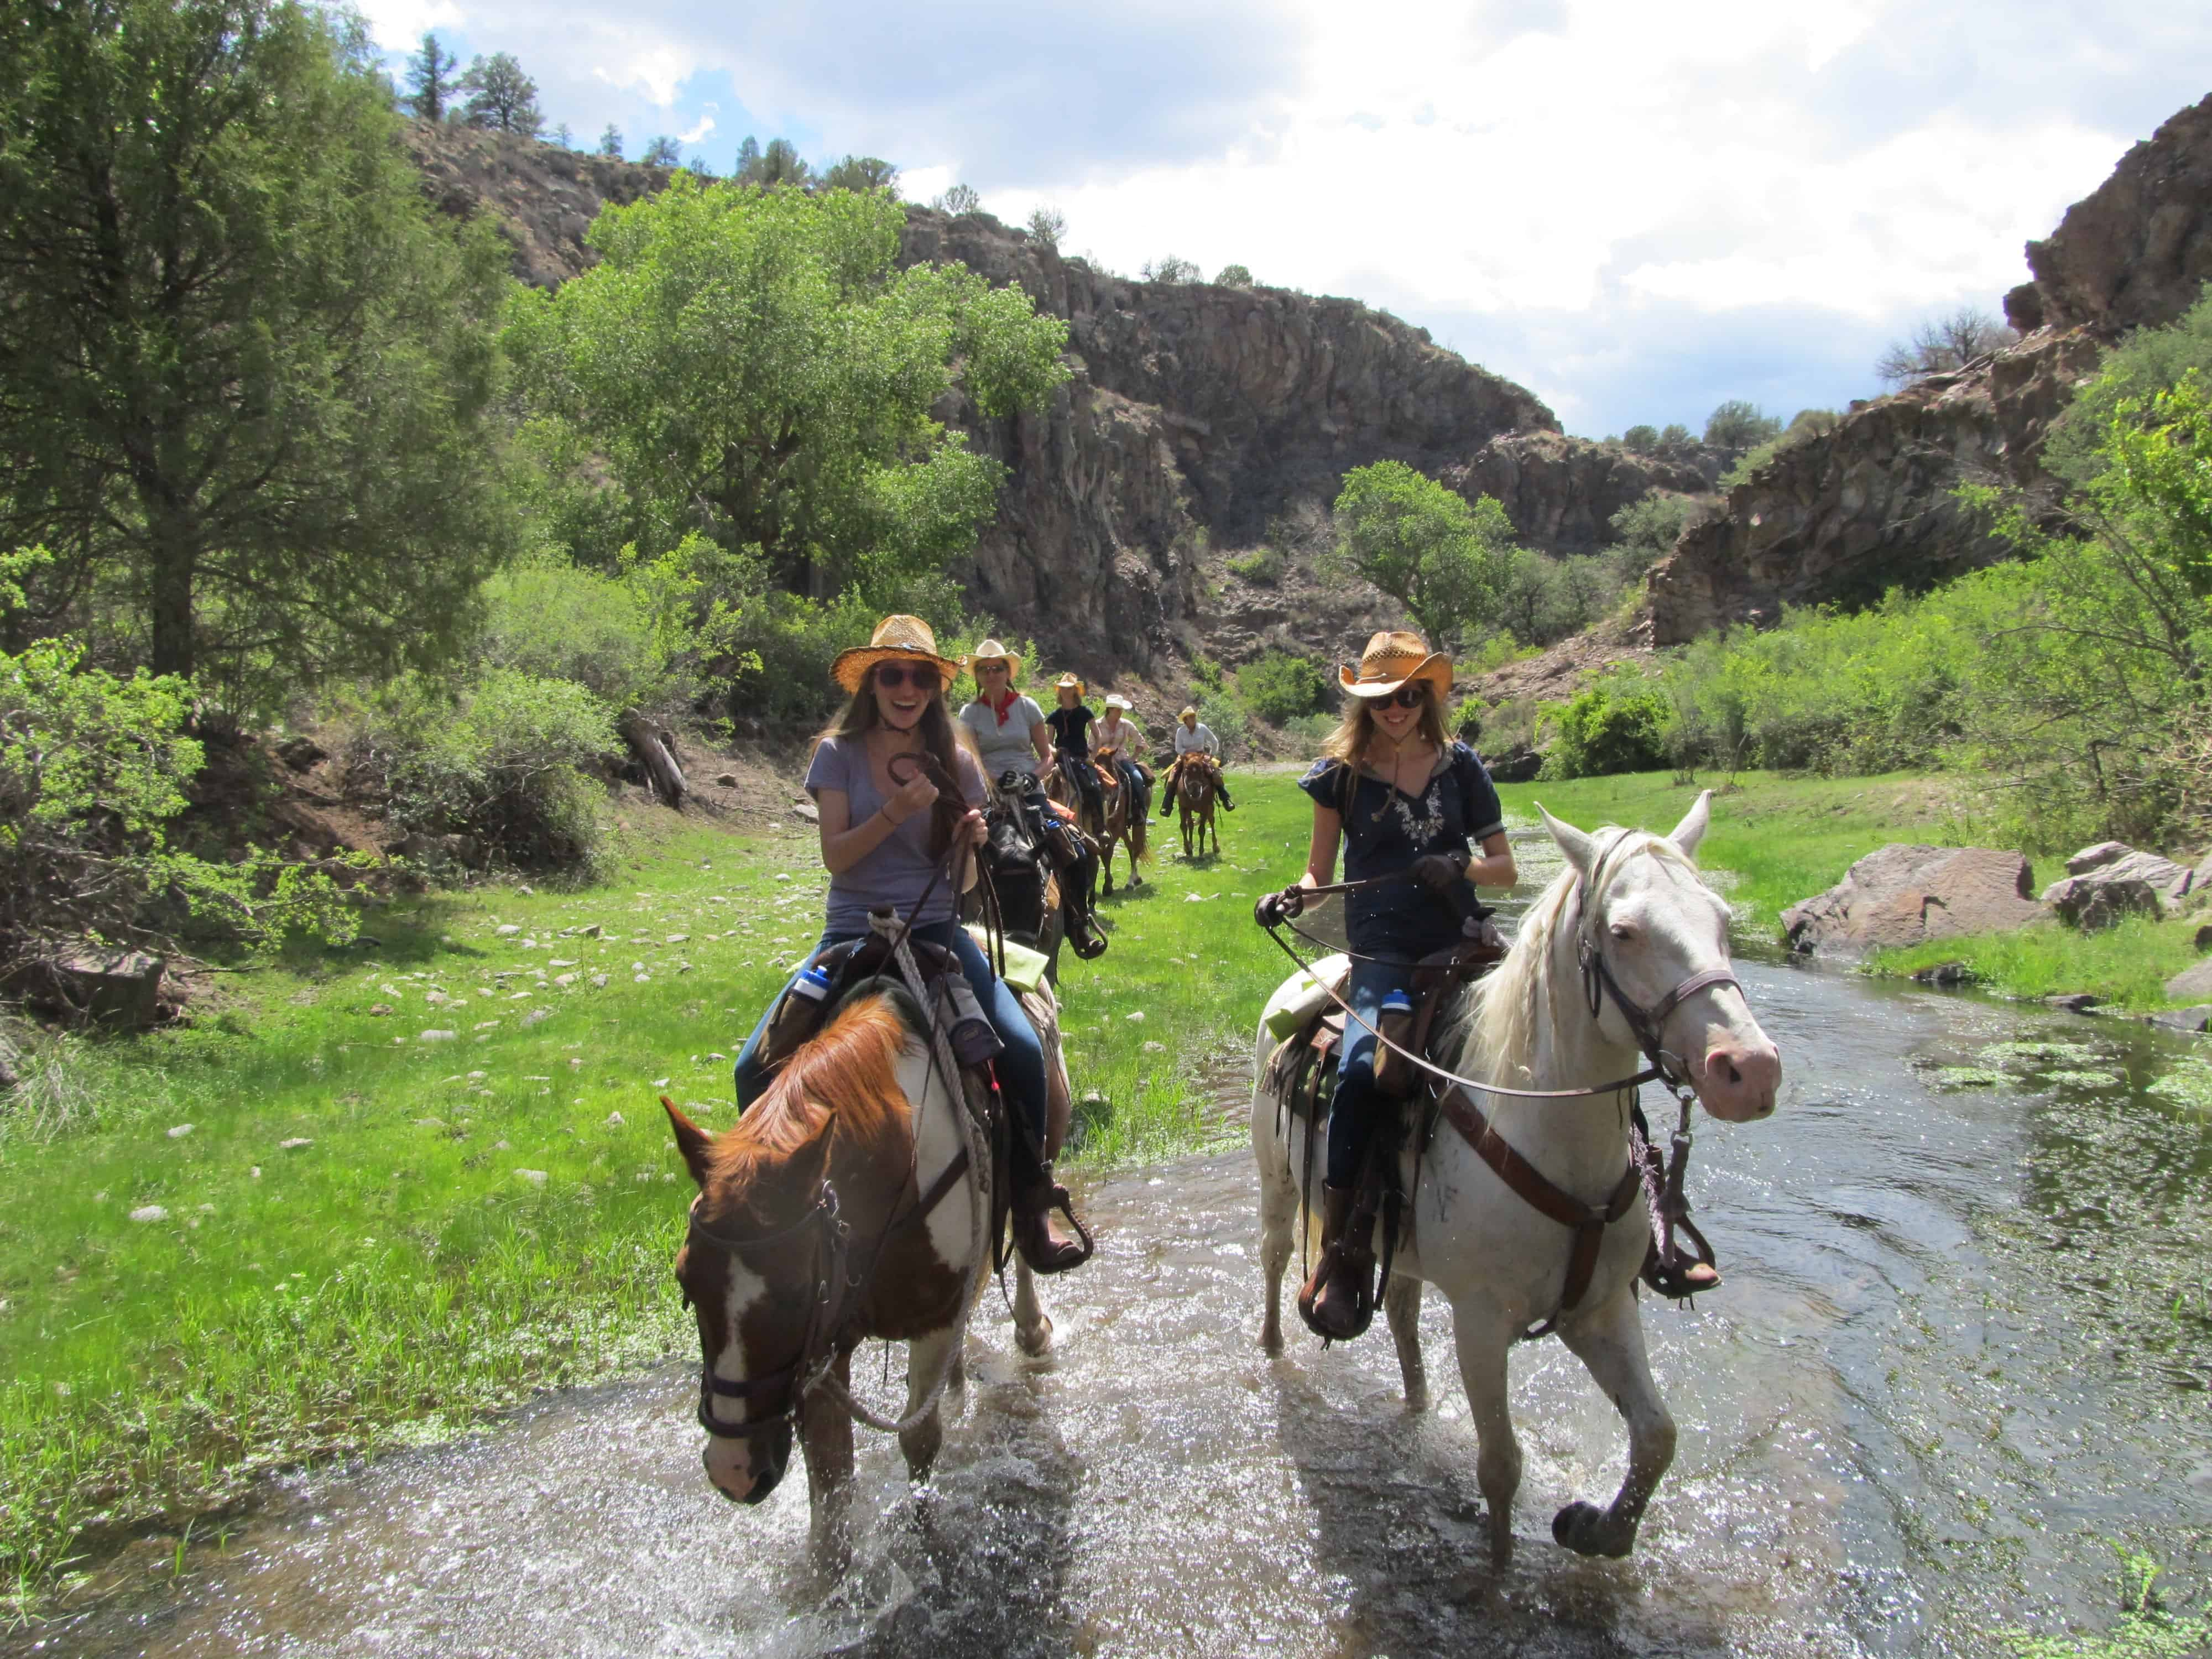 Planning a Getaway? Consider a Gila National Forest Summer Vacation